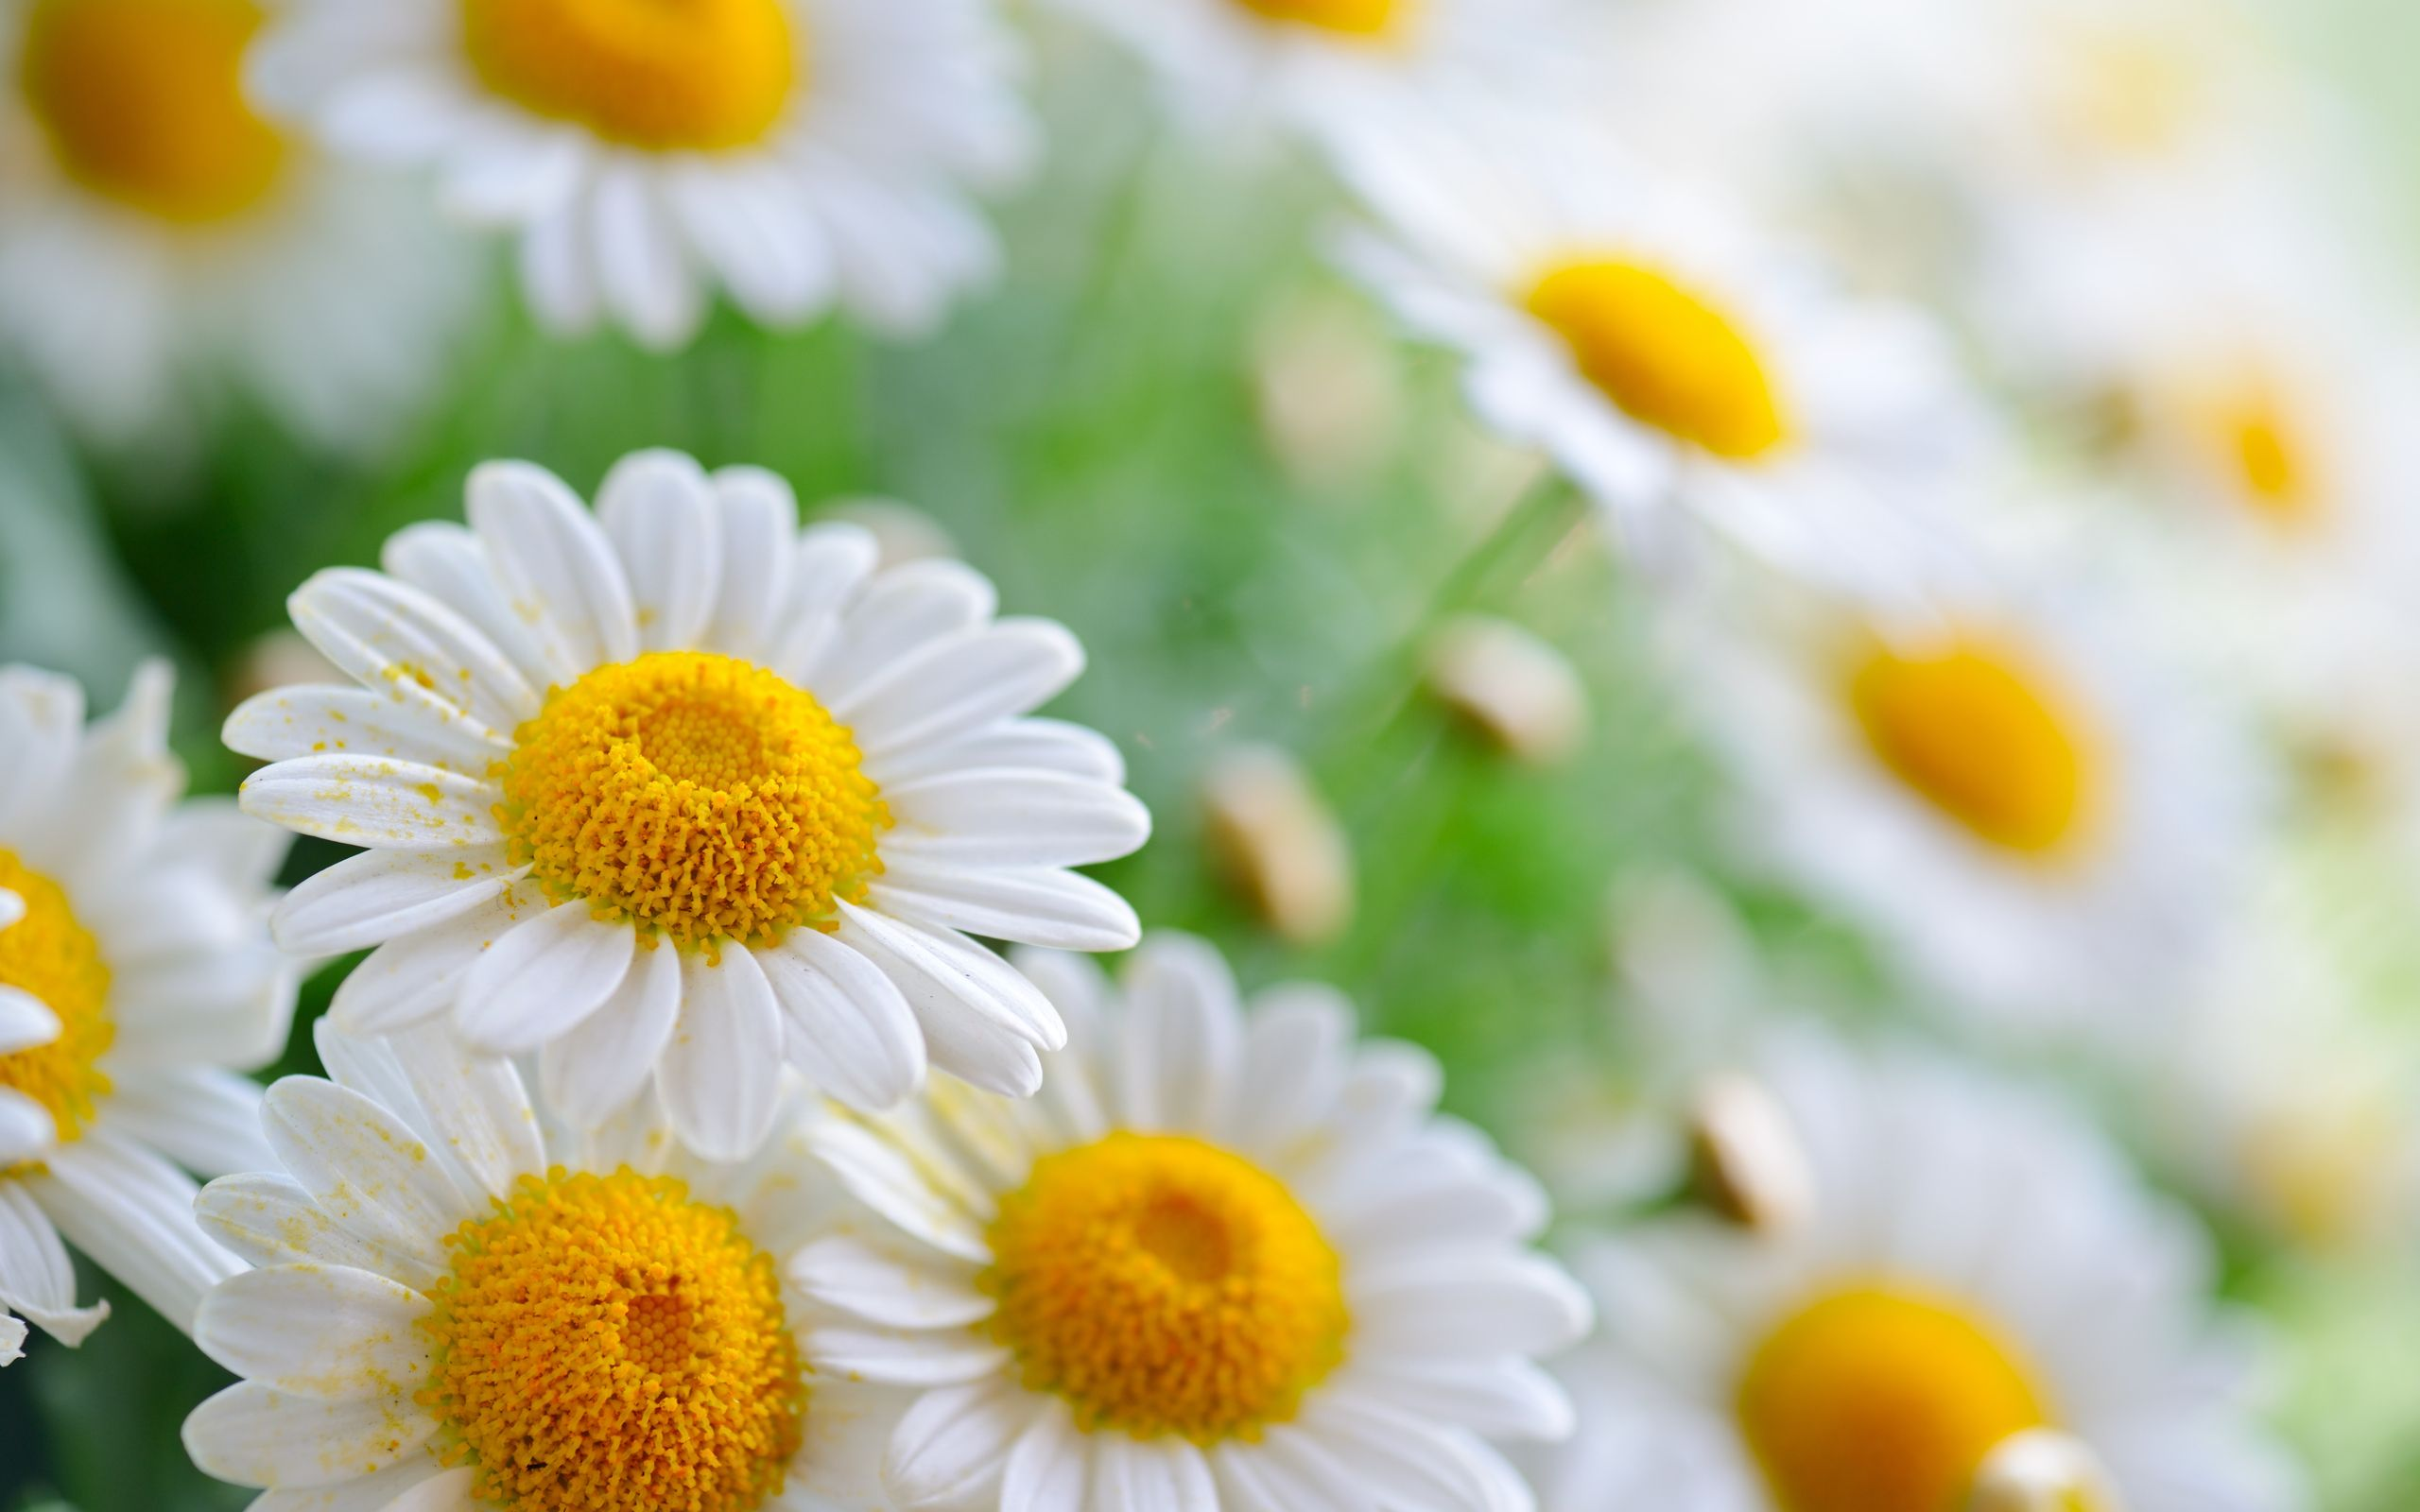 Daisy wallpapers group with items wallpapers 4k pinterest daisy wallpapers group with items izmirmasajfo